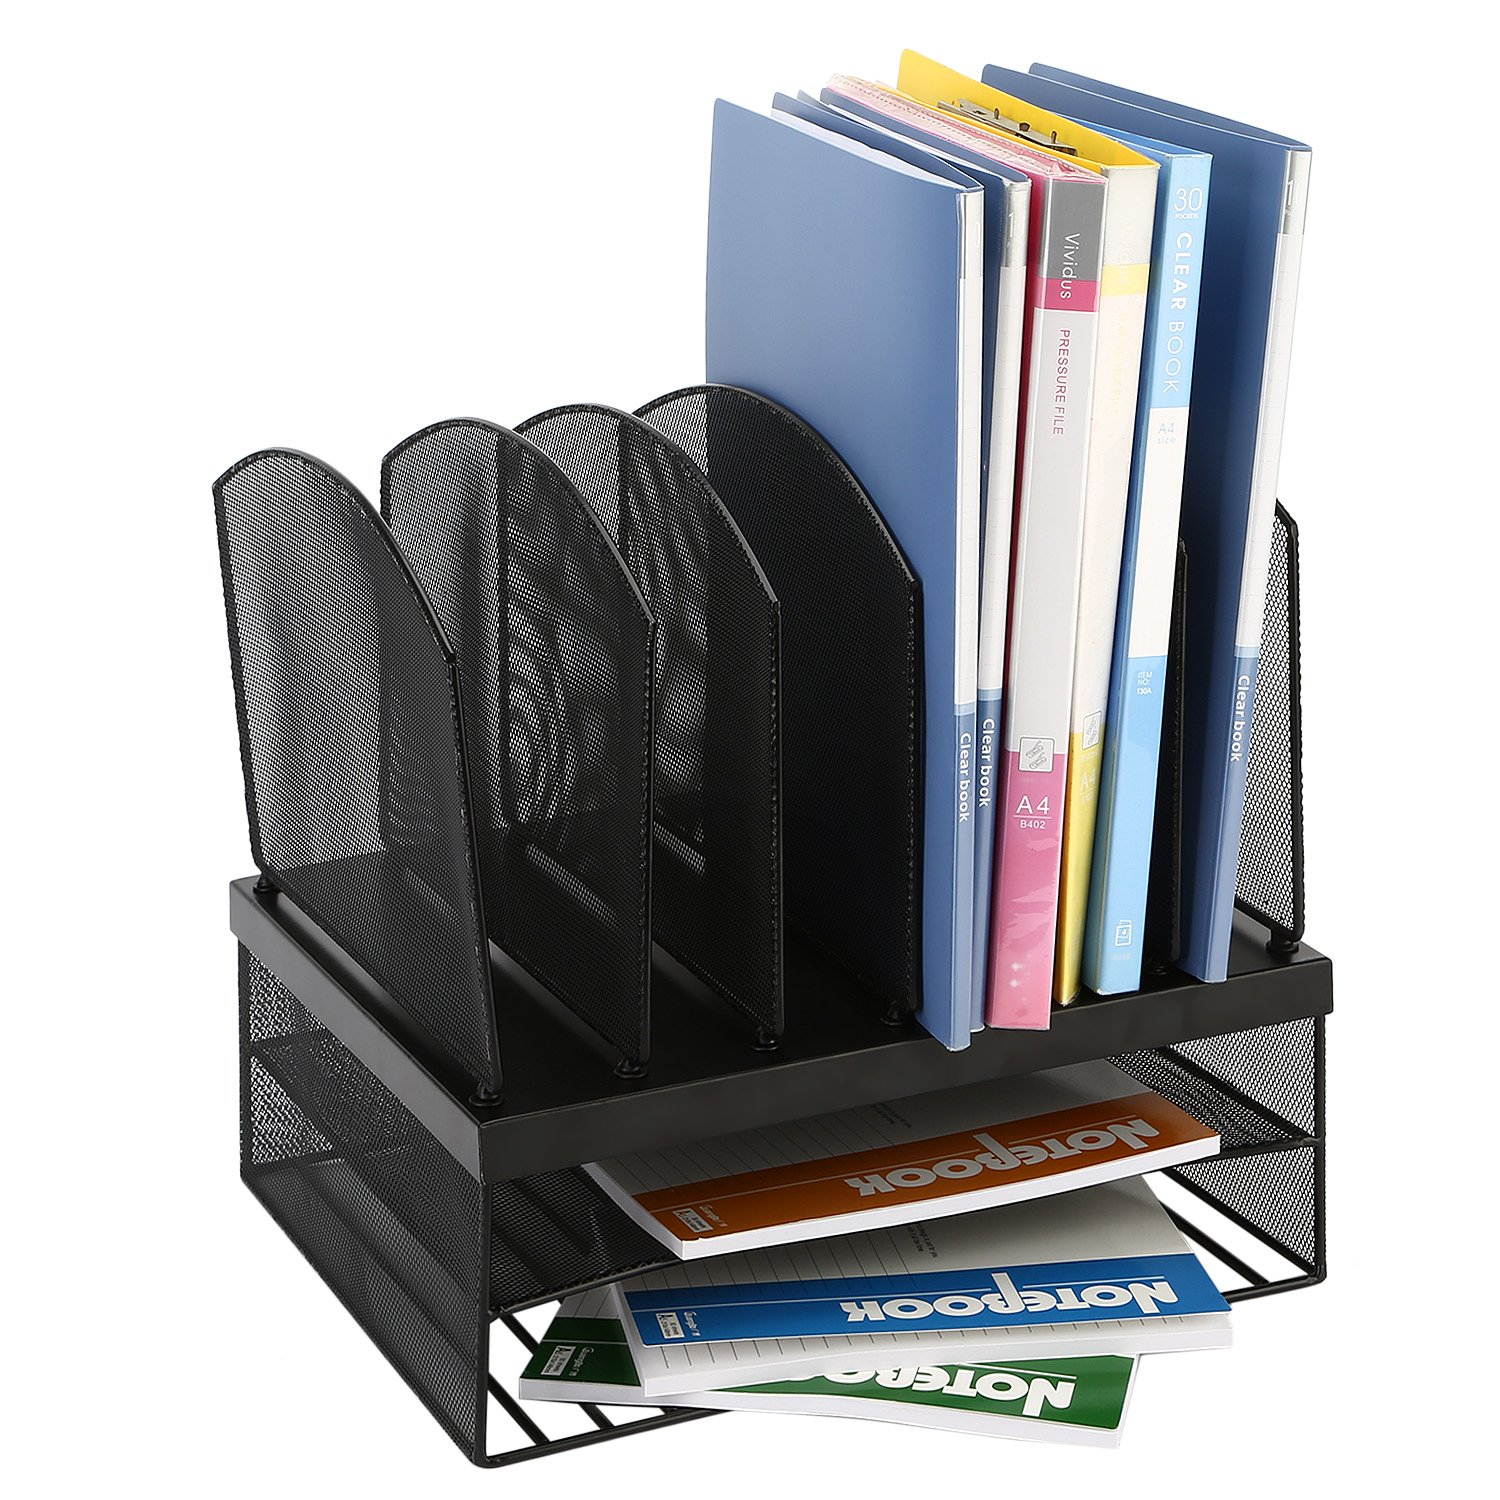 DRROT Mesh Desktop Organizer with 6 Vertical/2 Horizontal Sections, Black